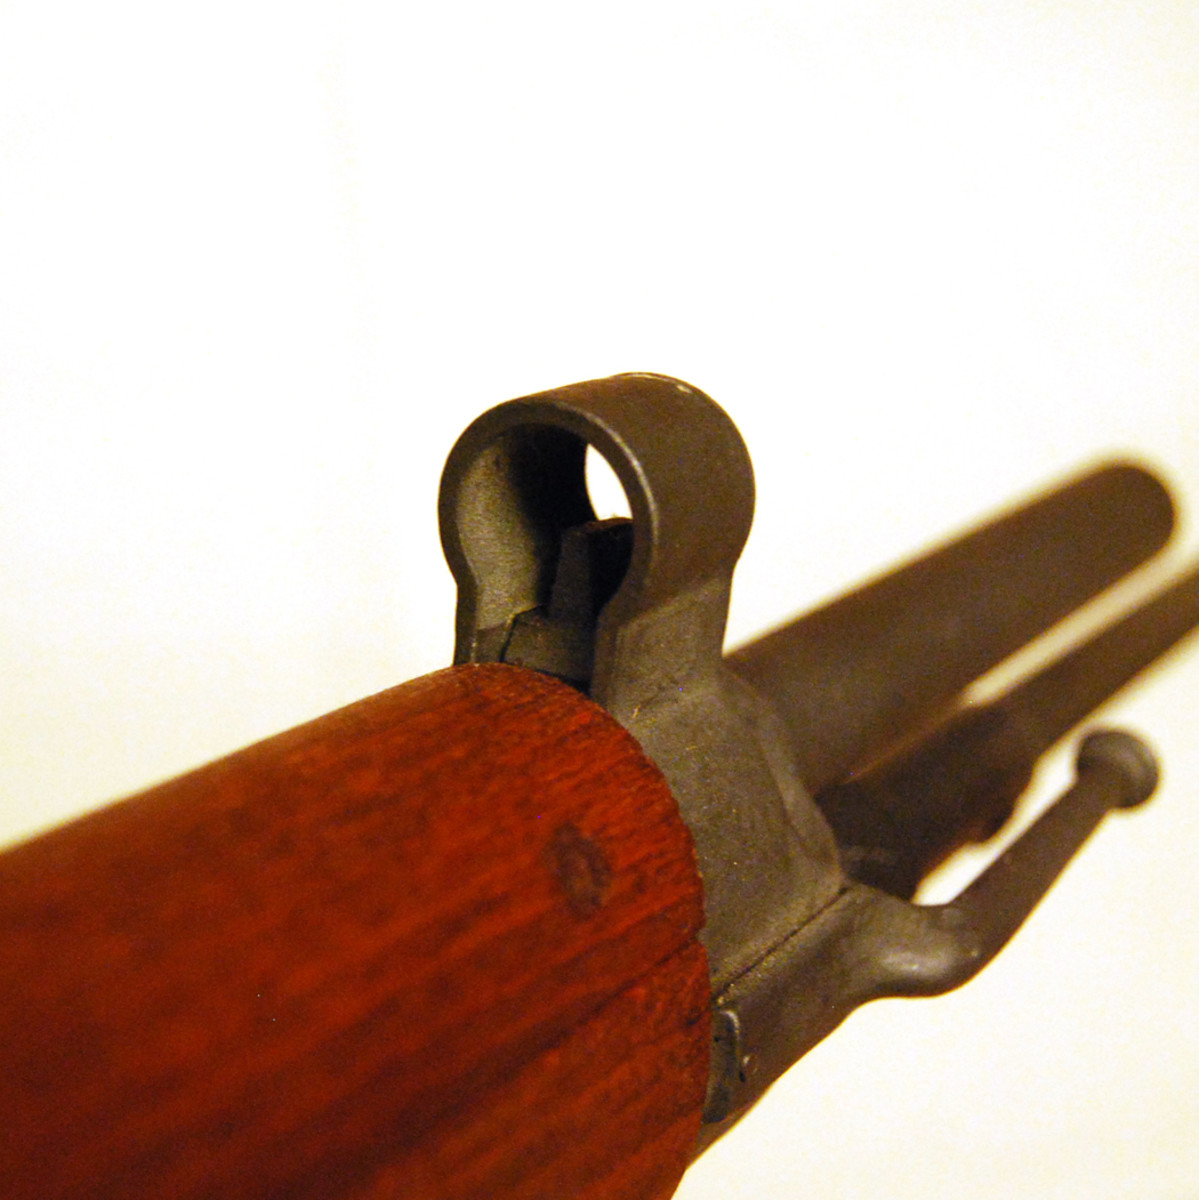 Like the Lebel Model 1886 rifle, the MAS-36 featured a stacking hook offset to the right side of the barrel for stacking upright with other rifles (usually three). The milled post front sight was protected by a hood.